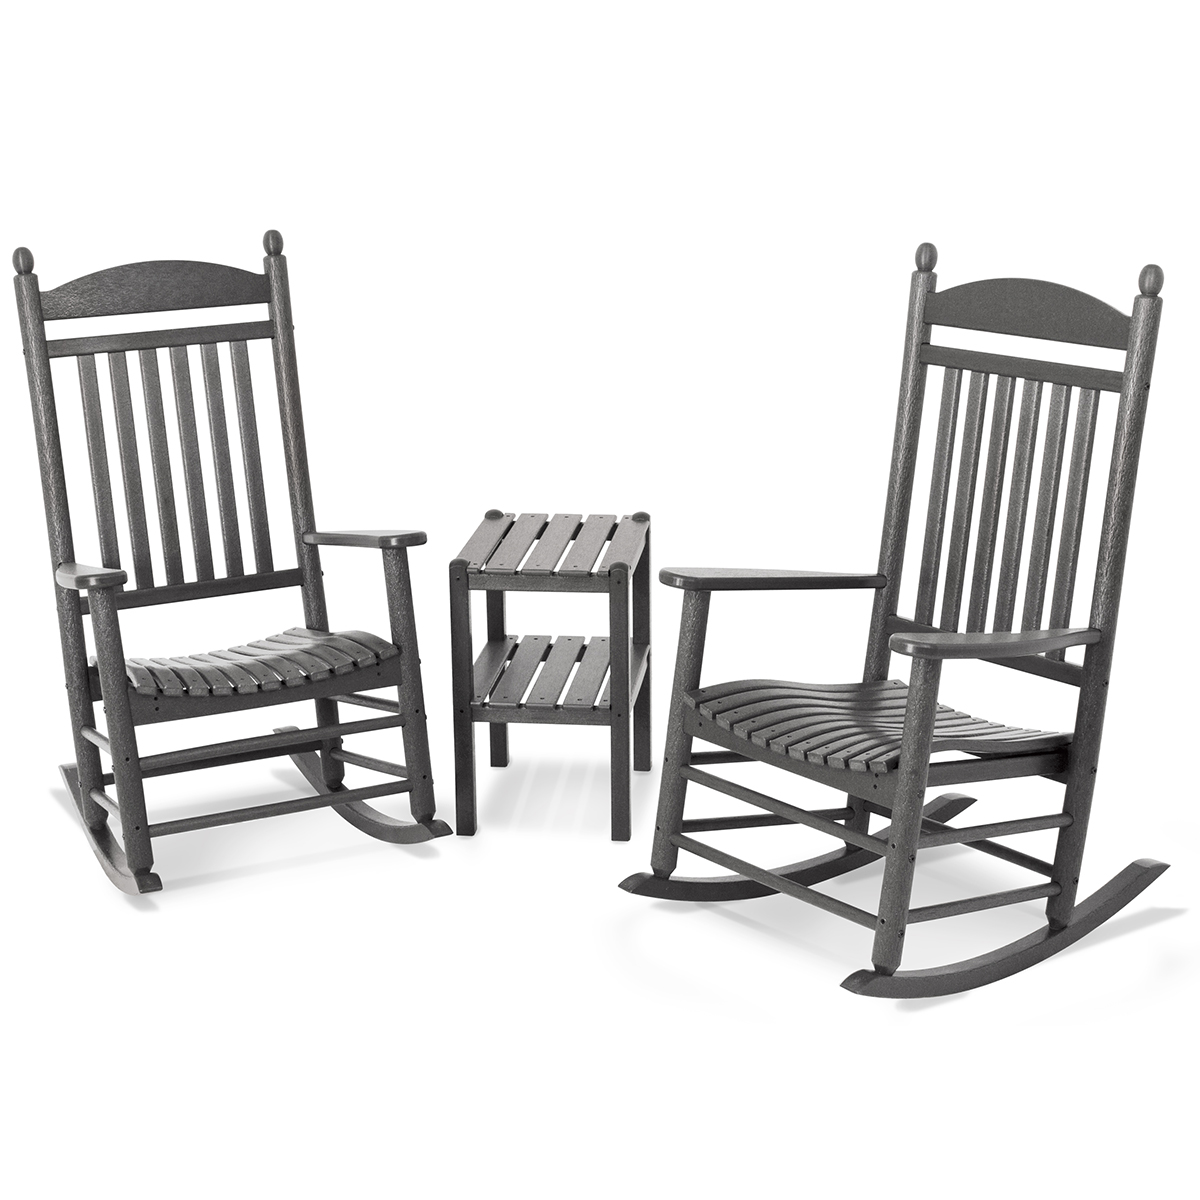 3-Piece Furniture Set